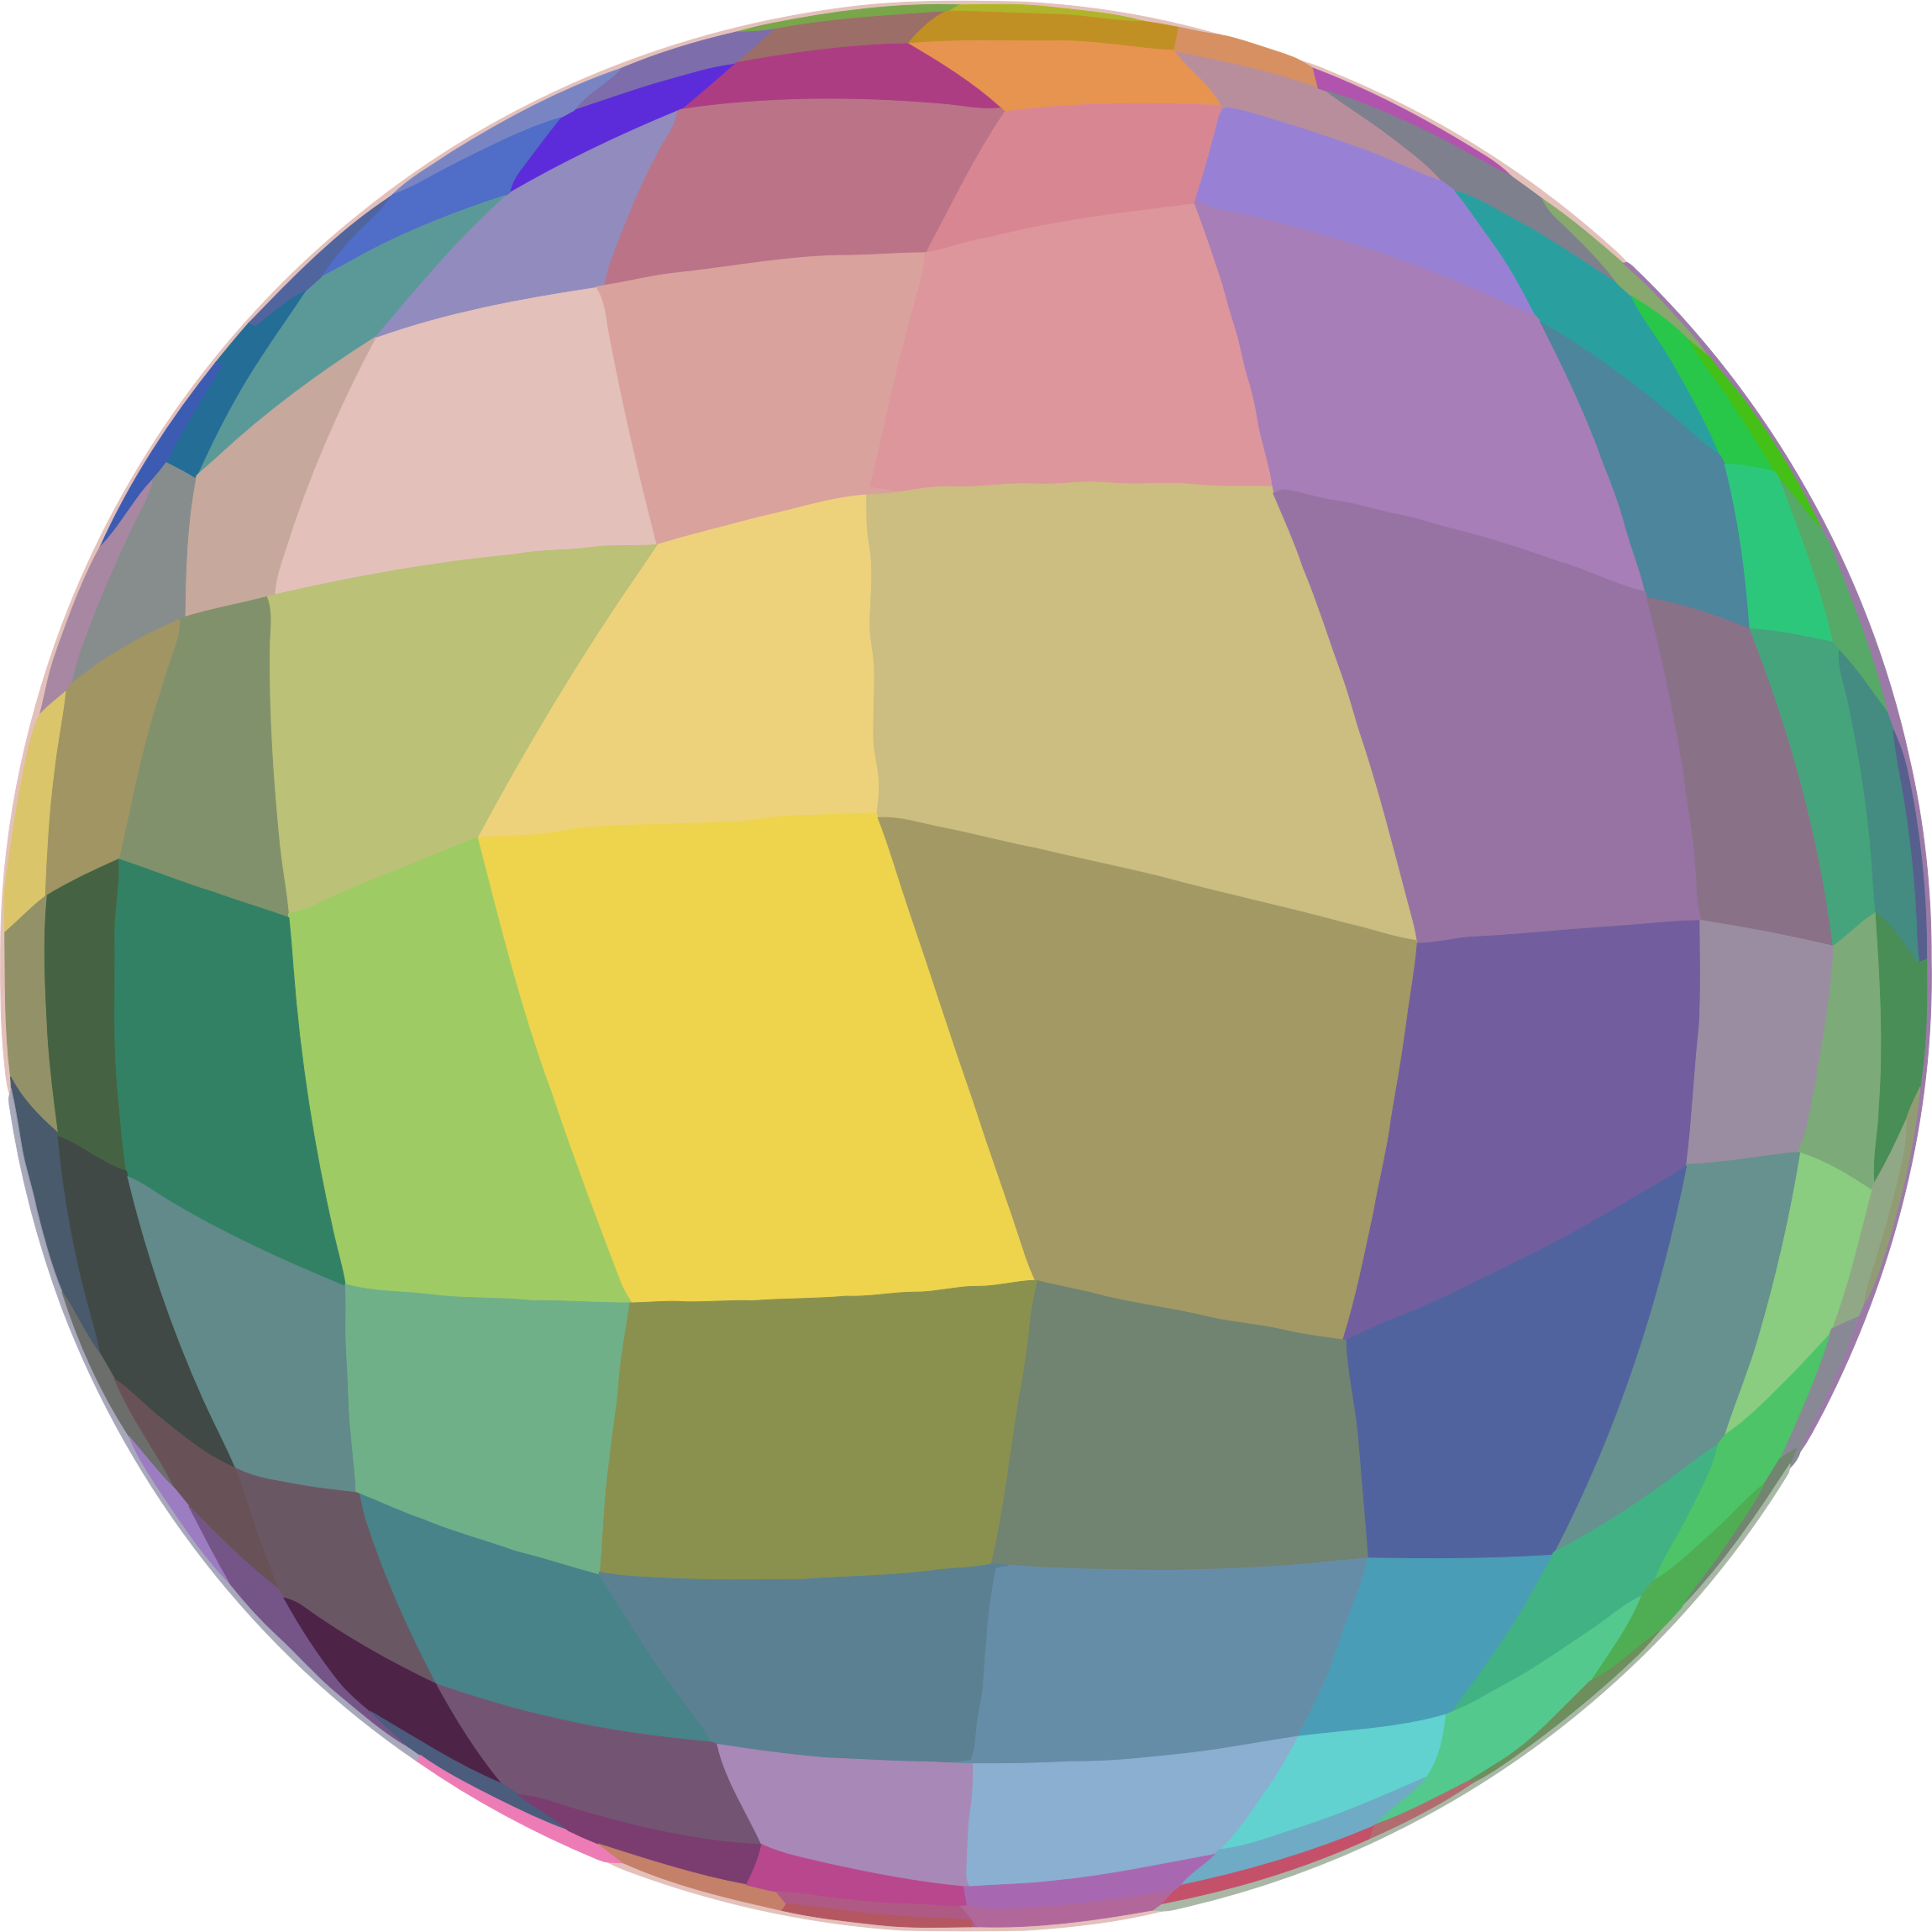 Mosaic Ball On A Diet by GDJ